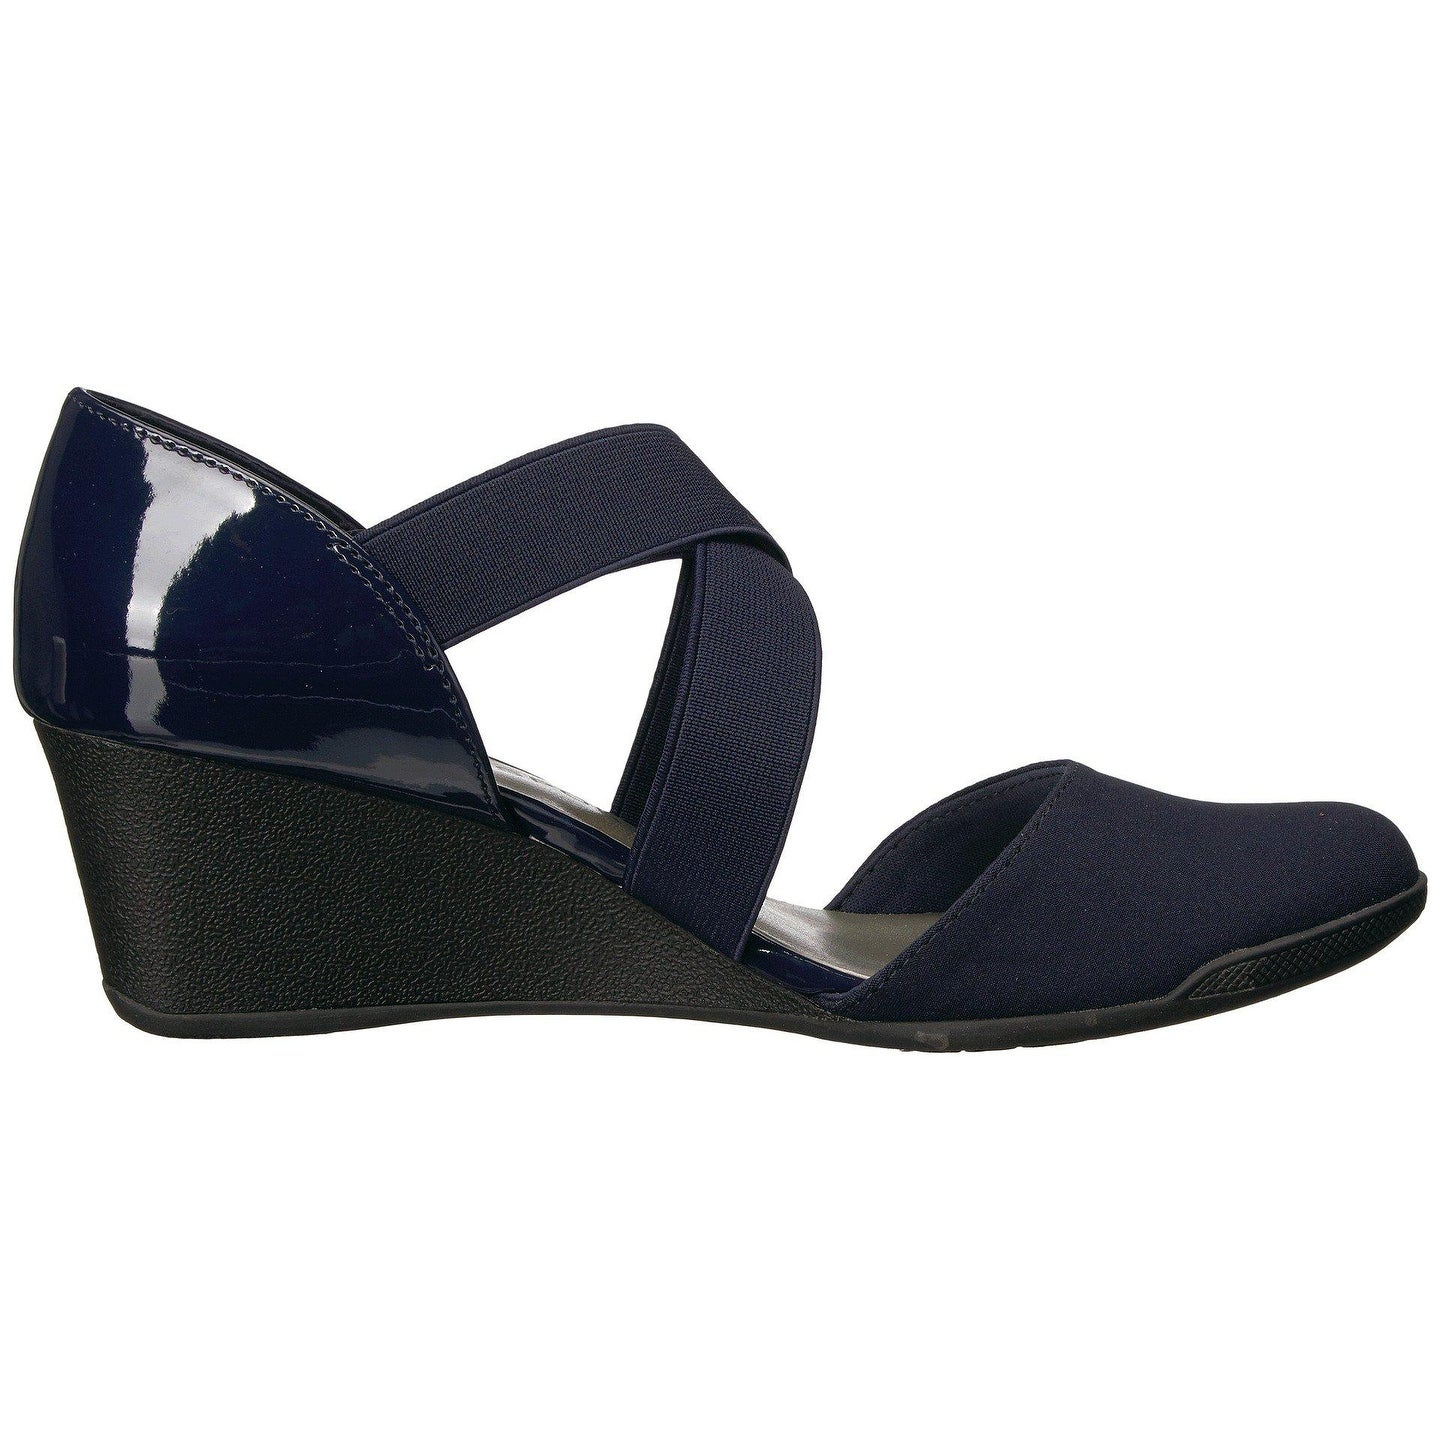 5f14d225606 Shop Anne Klein Womens Teaberry Fabric Closed Toe Casual Platform Sandals -  Free Shipping Today - Overstock - 22342744